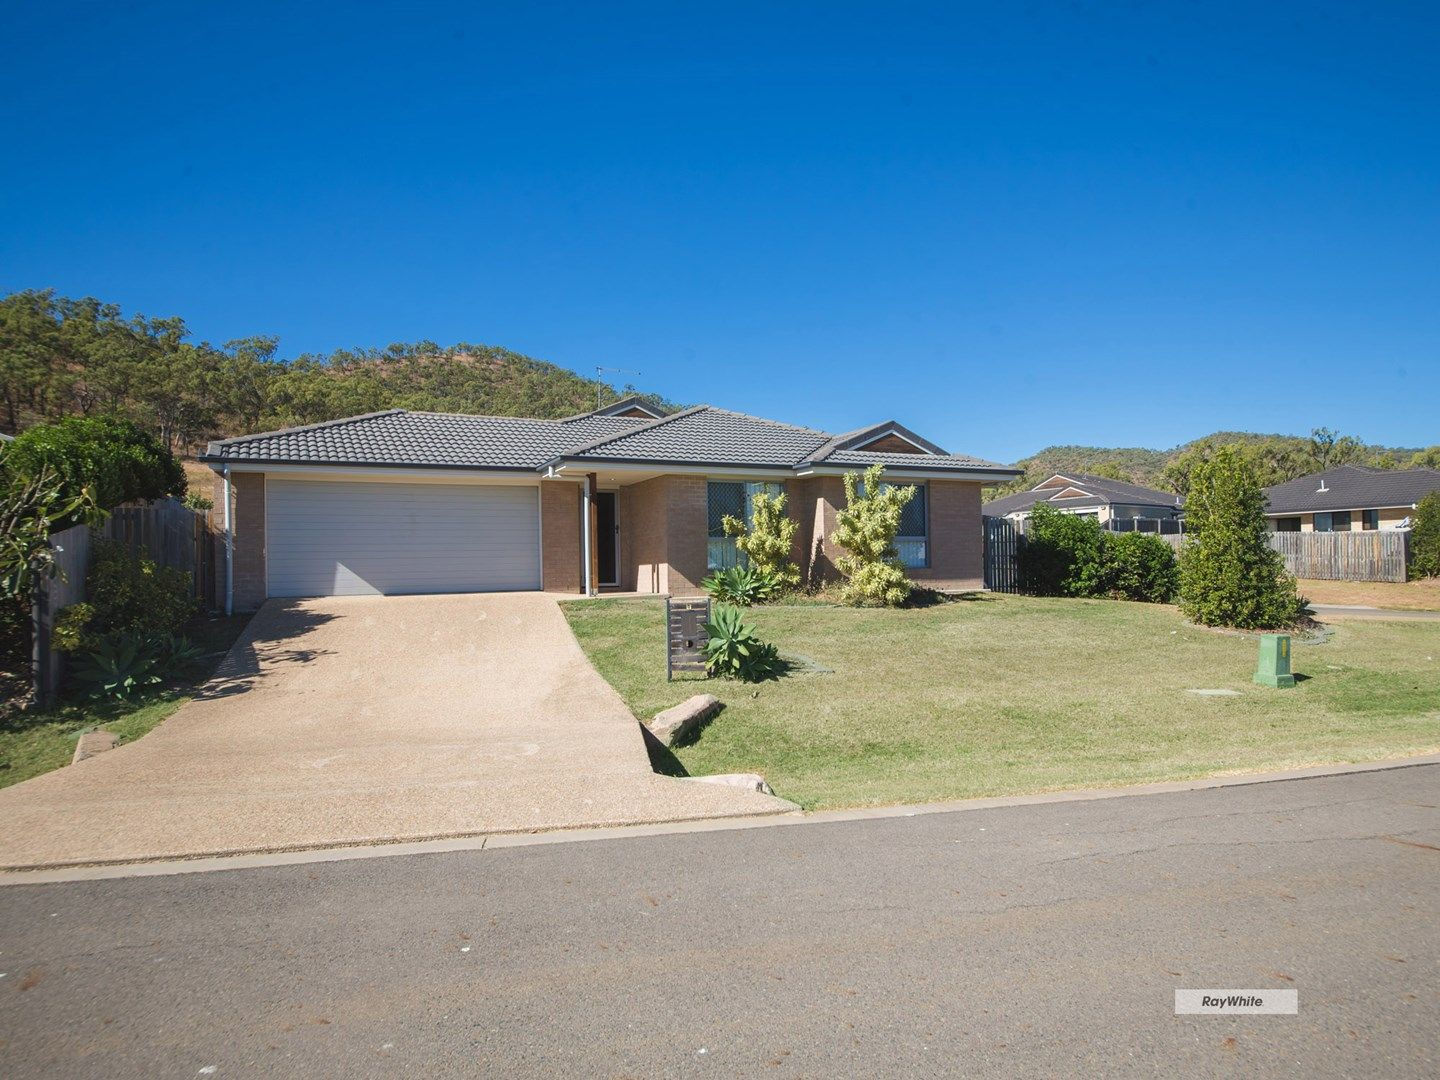 8 Jim Goldston Drive, Norman Gardens QLD 4701, Image 0